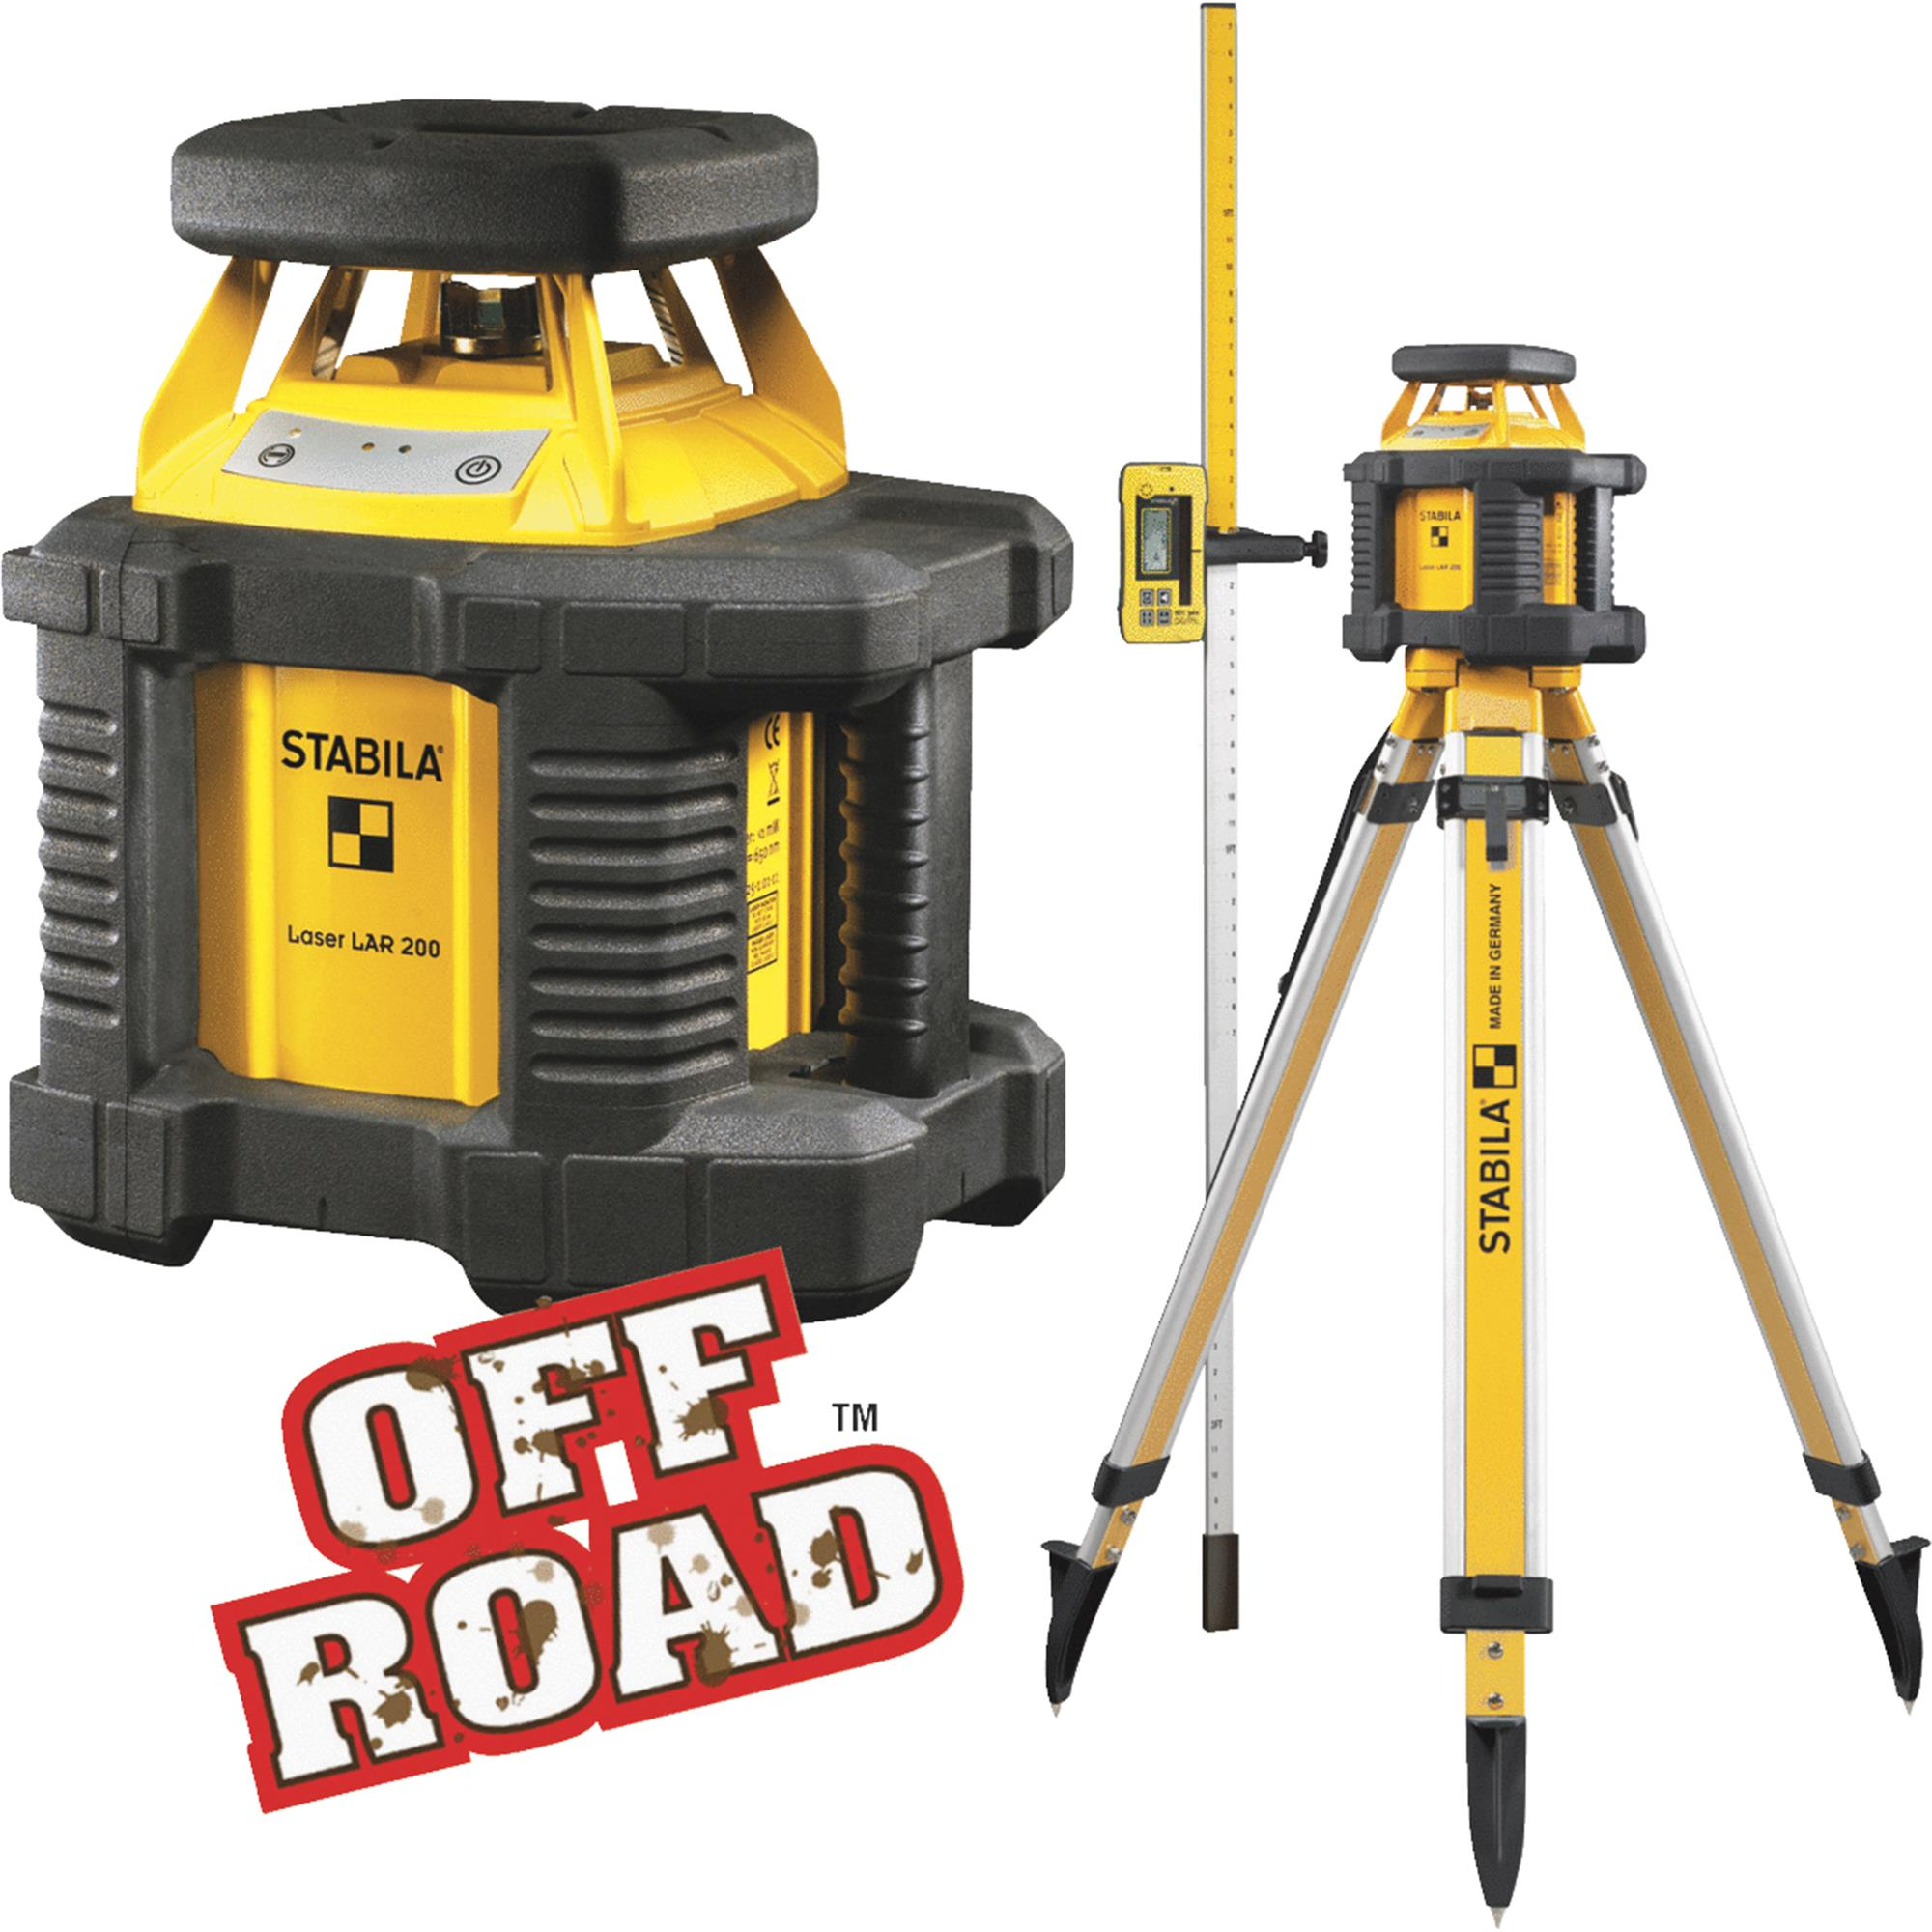 Stabila Off Road Rotary Laser Level by Stabila